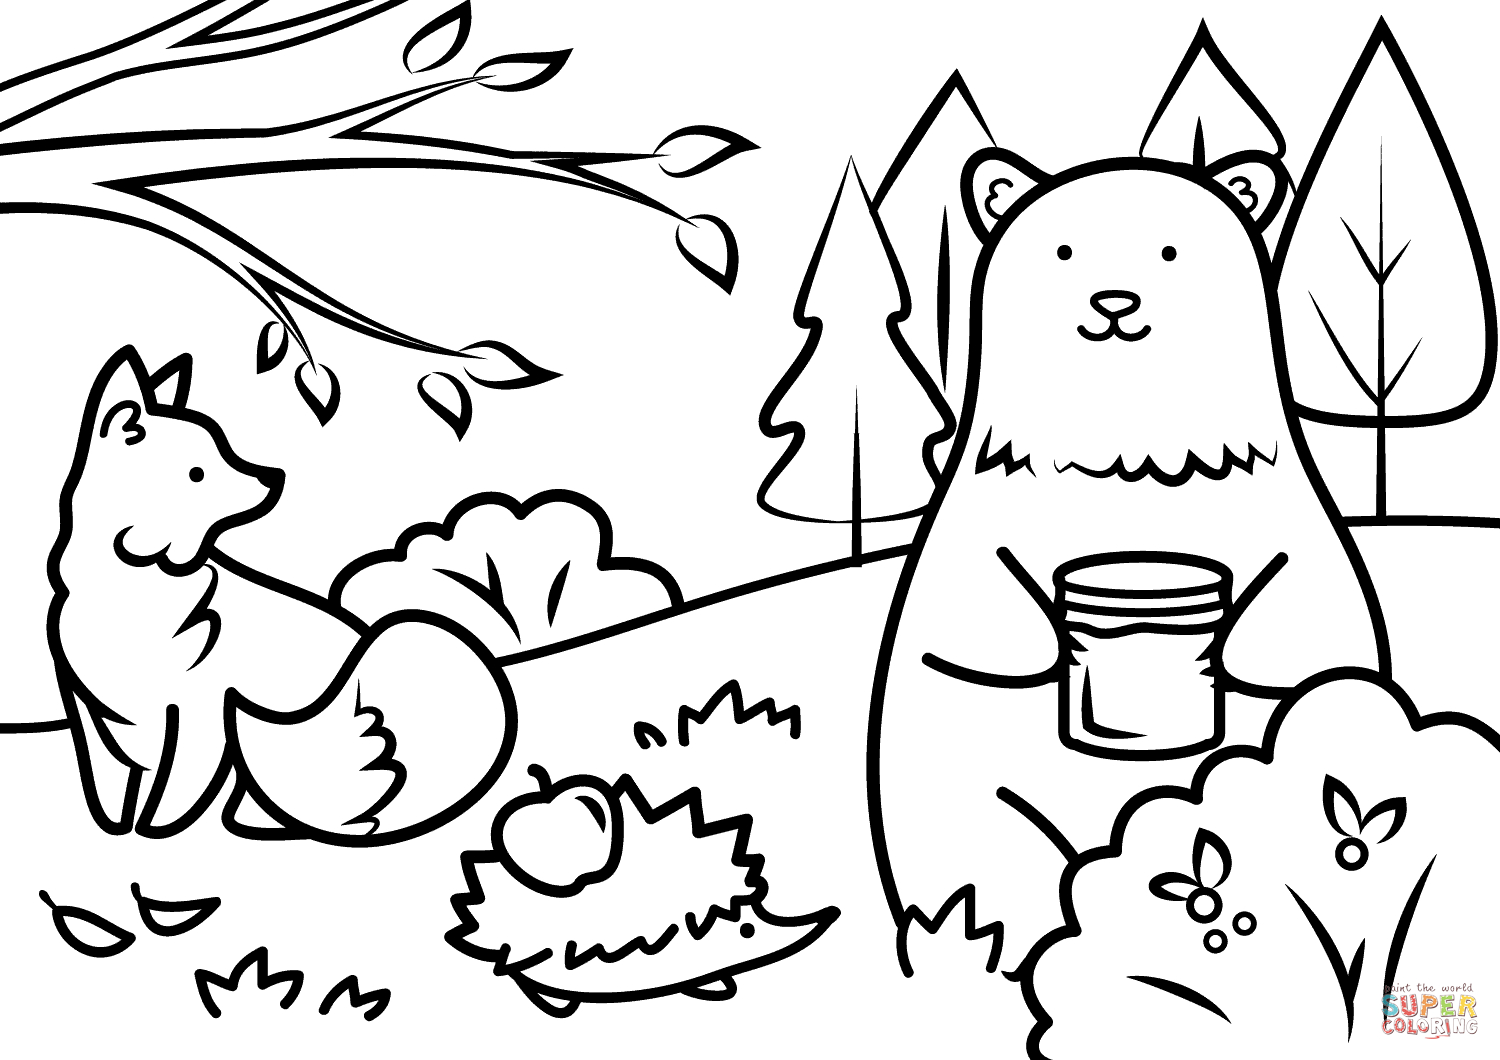 Autumn Animals Coloring Page | Free Printable Coloring Pages - Free Printable Coloring Pages Fall Season